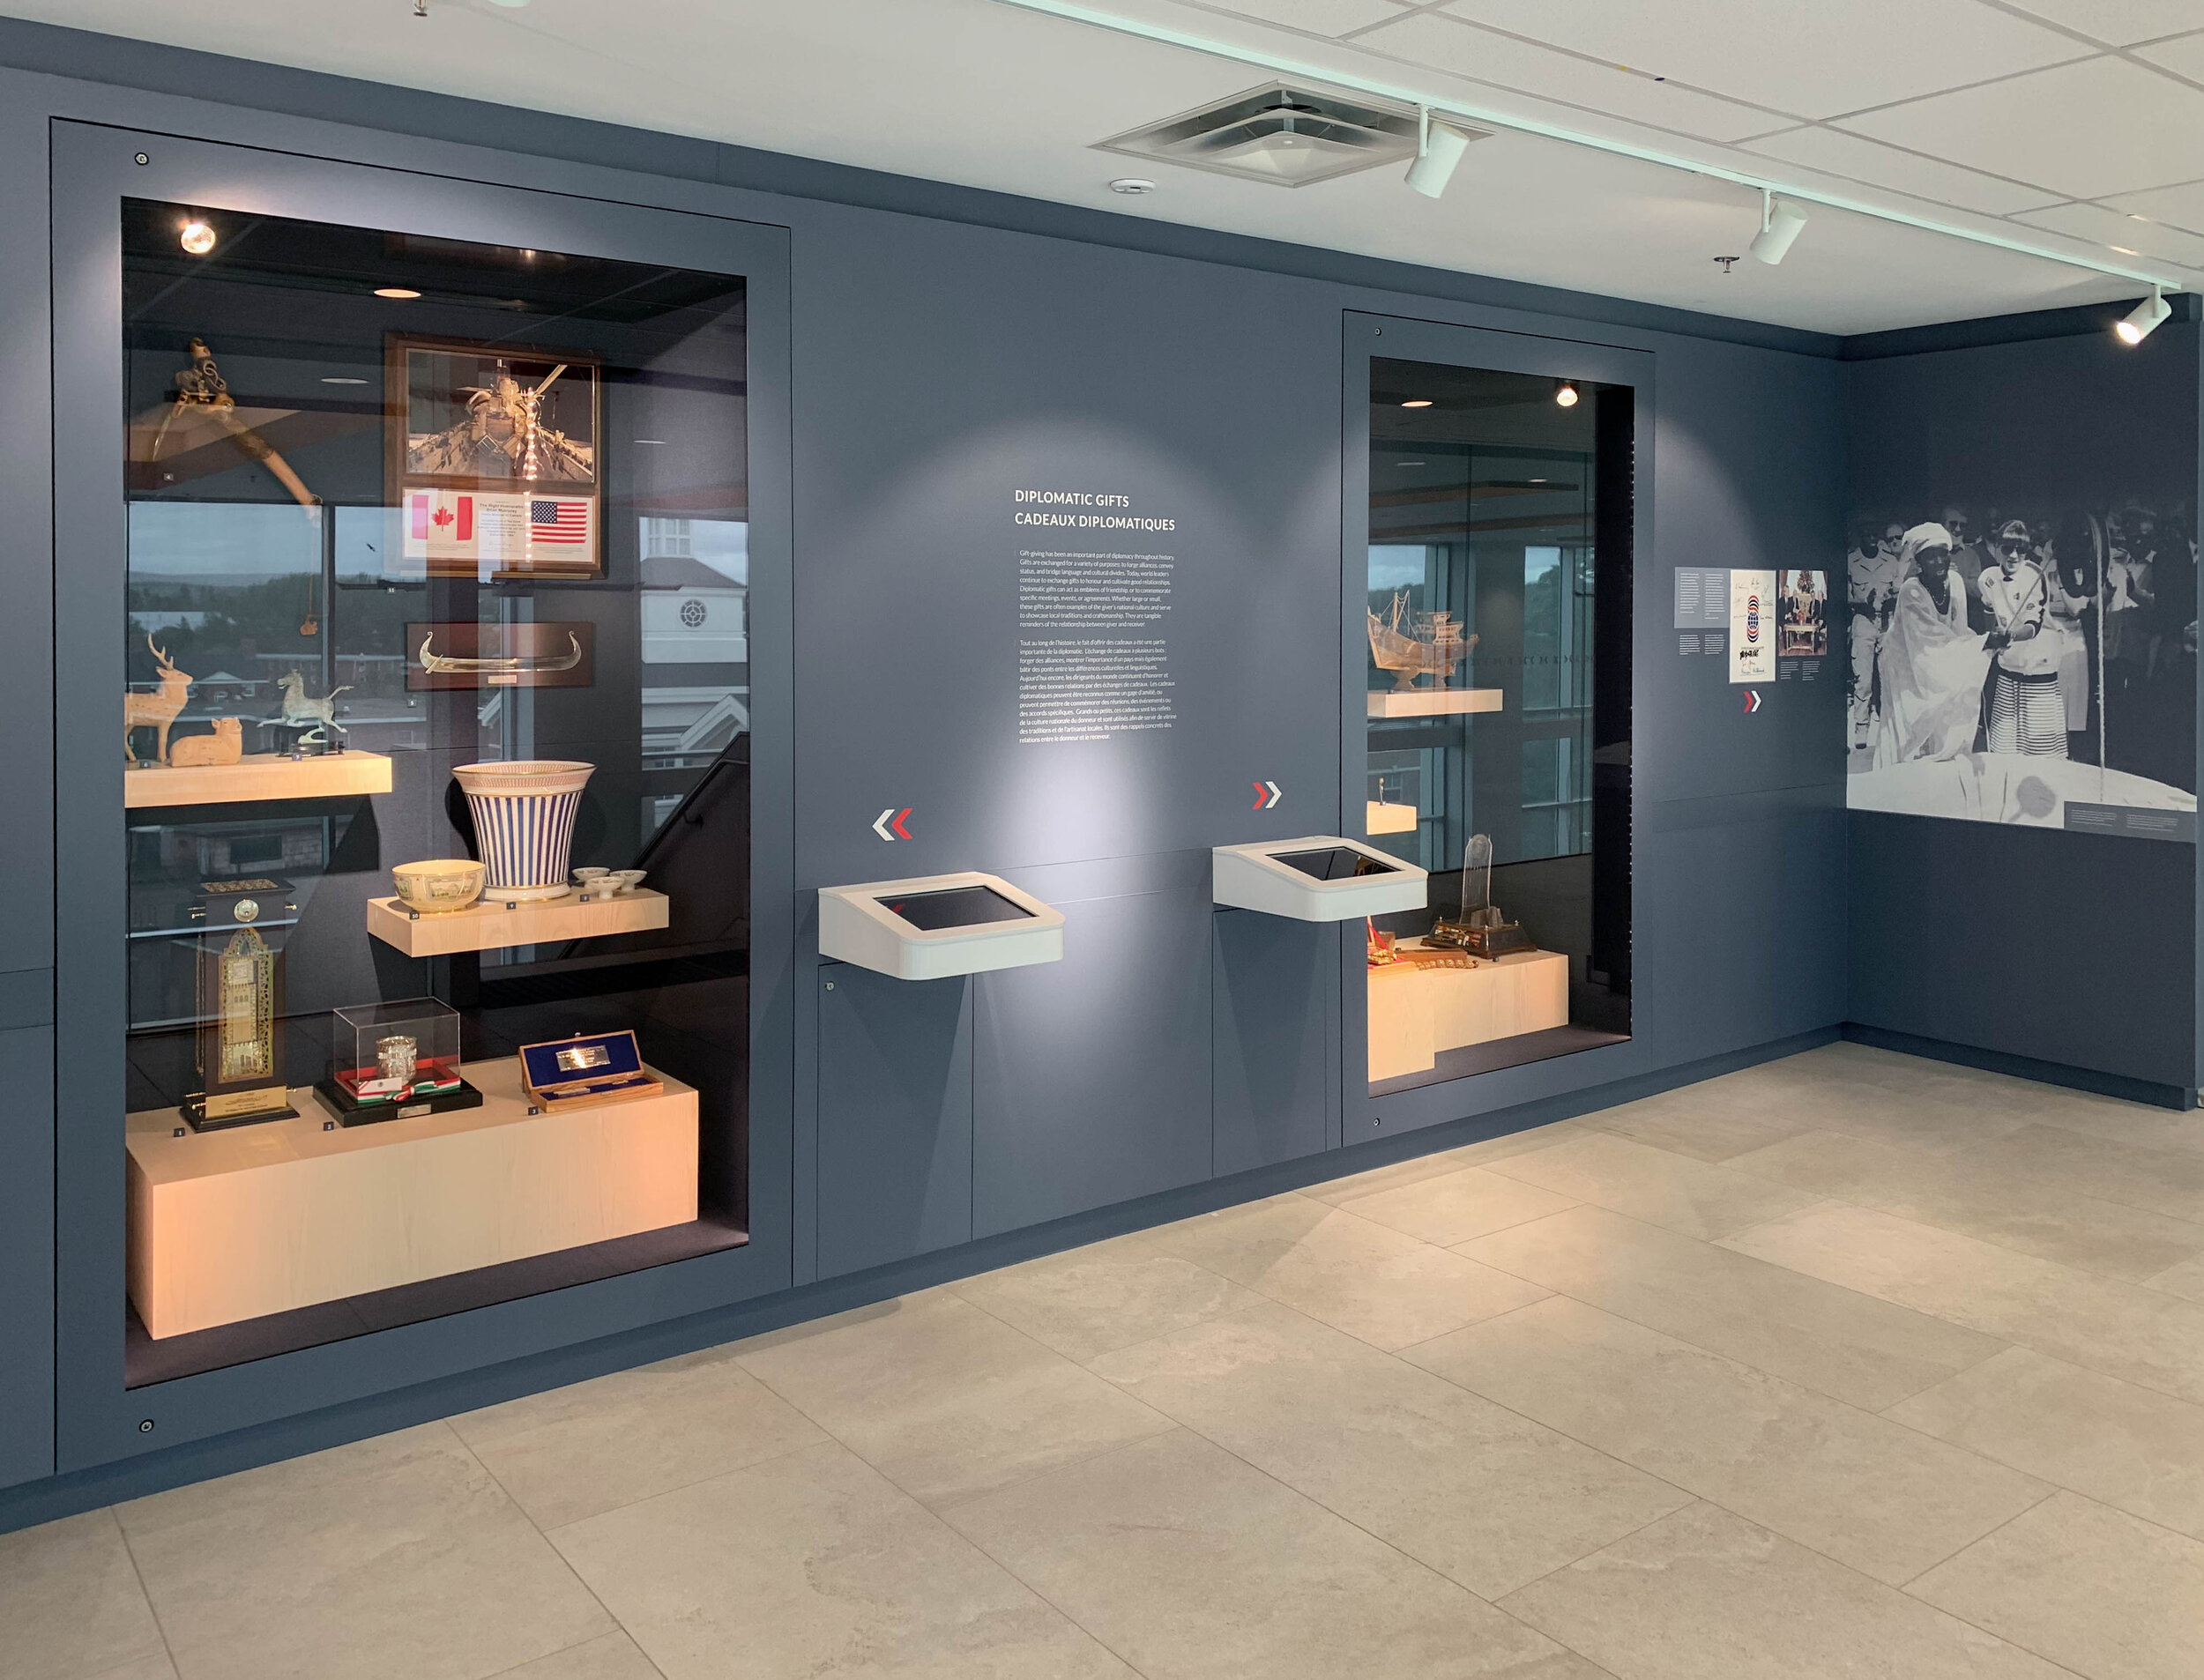 Small alcoves, pods, and walls throughout the building feature different themes and stories from Prime Minister Mulroney's years of public service.